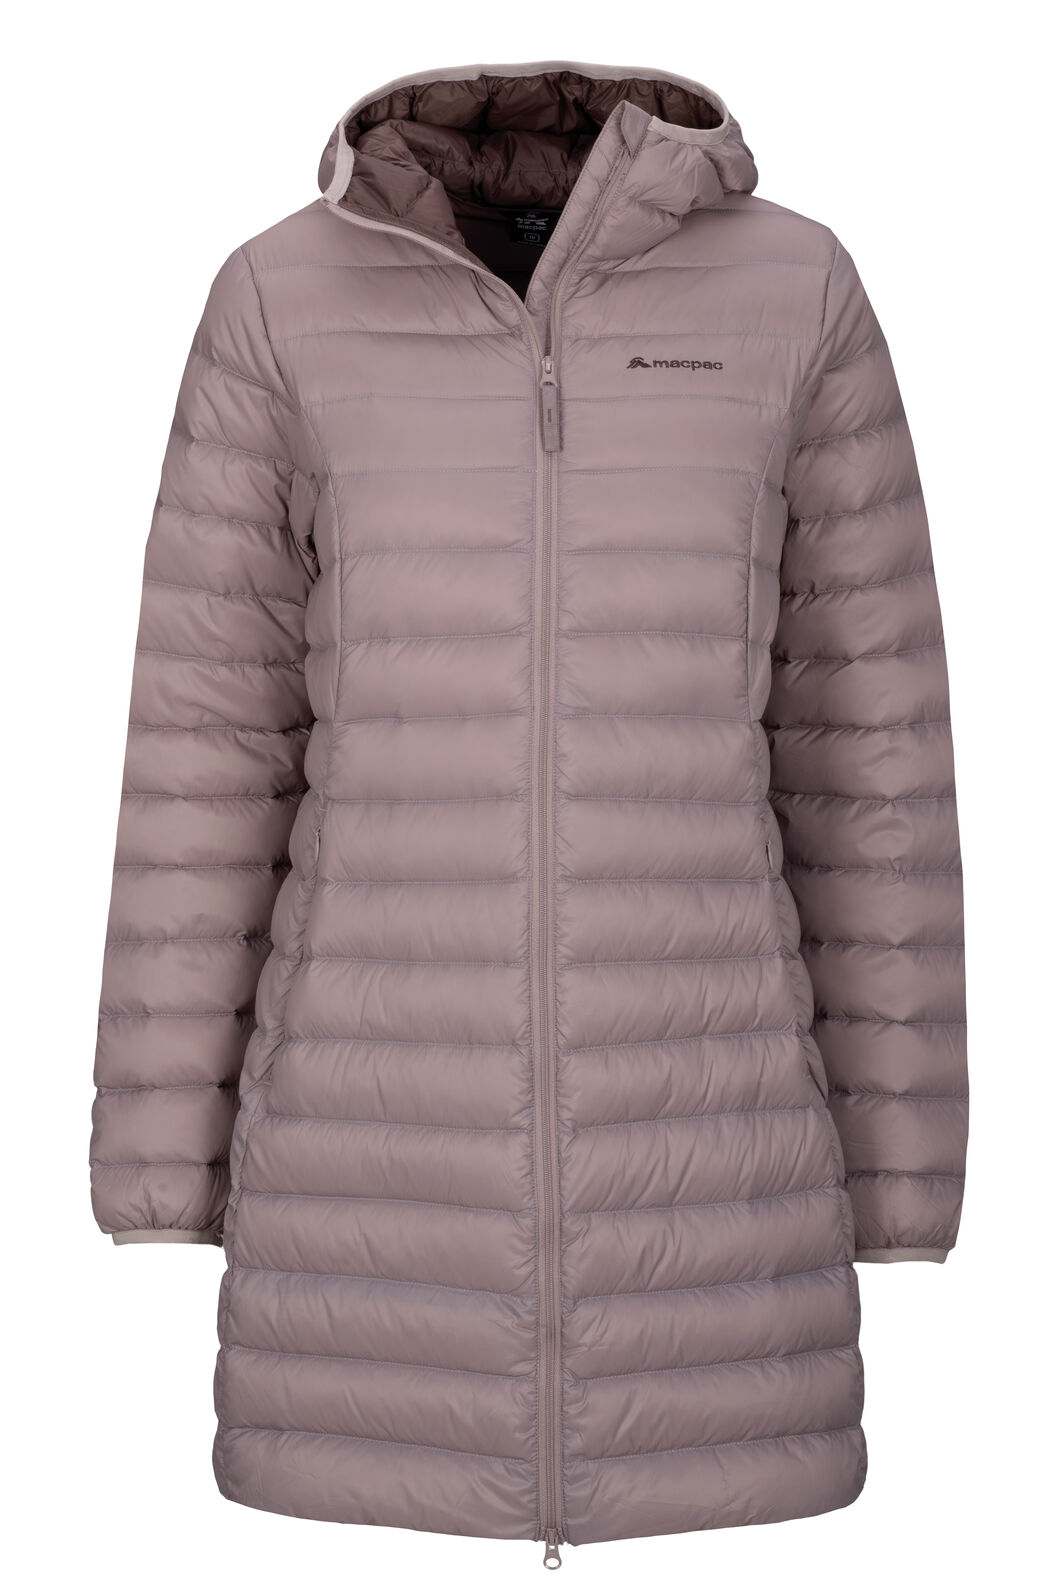 Macpac Uber Light Hooded Down Coat — Women's, Sphinx/Peppercorn, hi-res